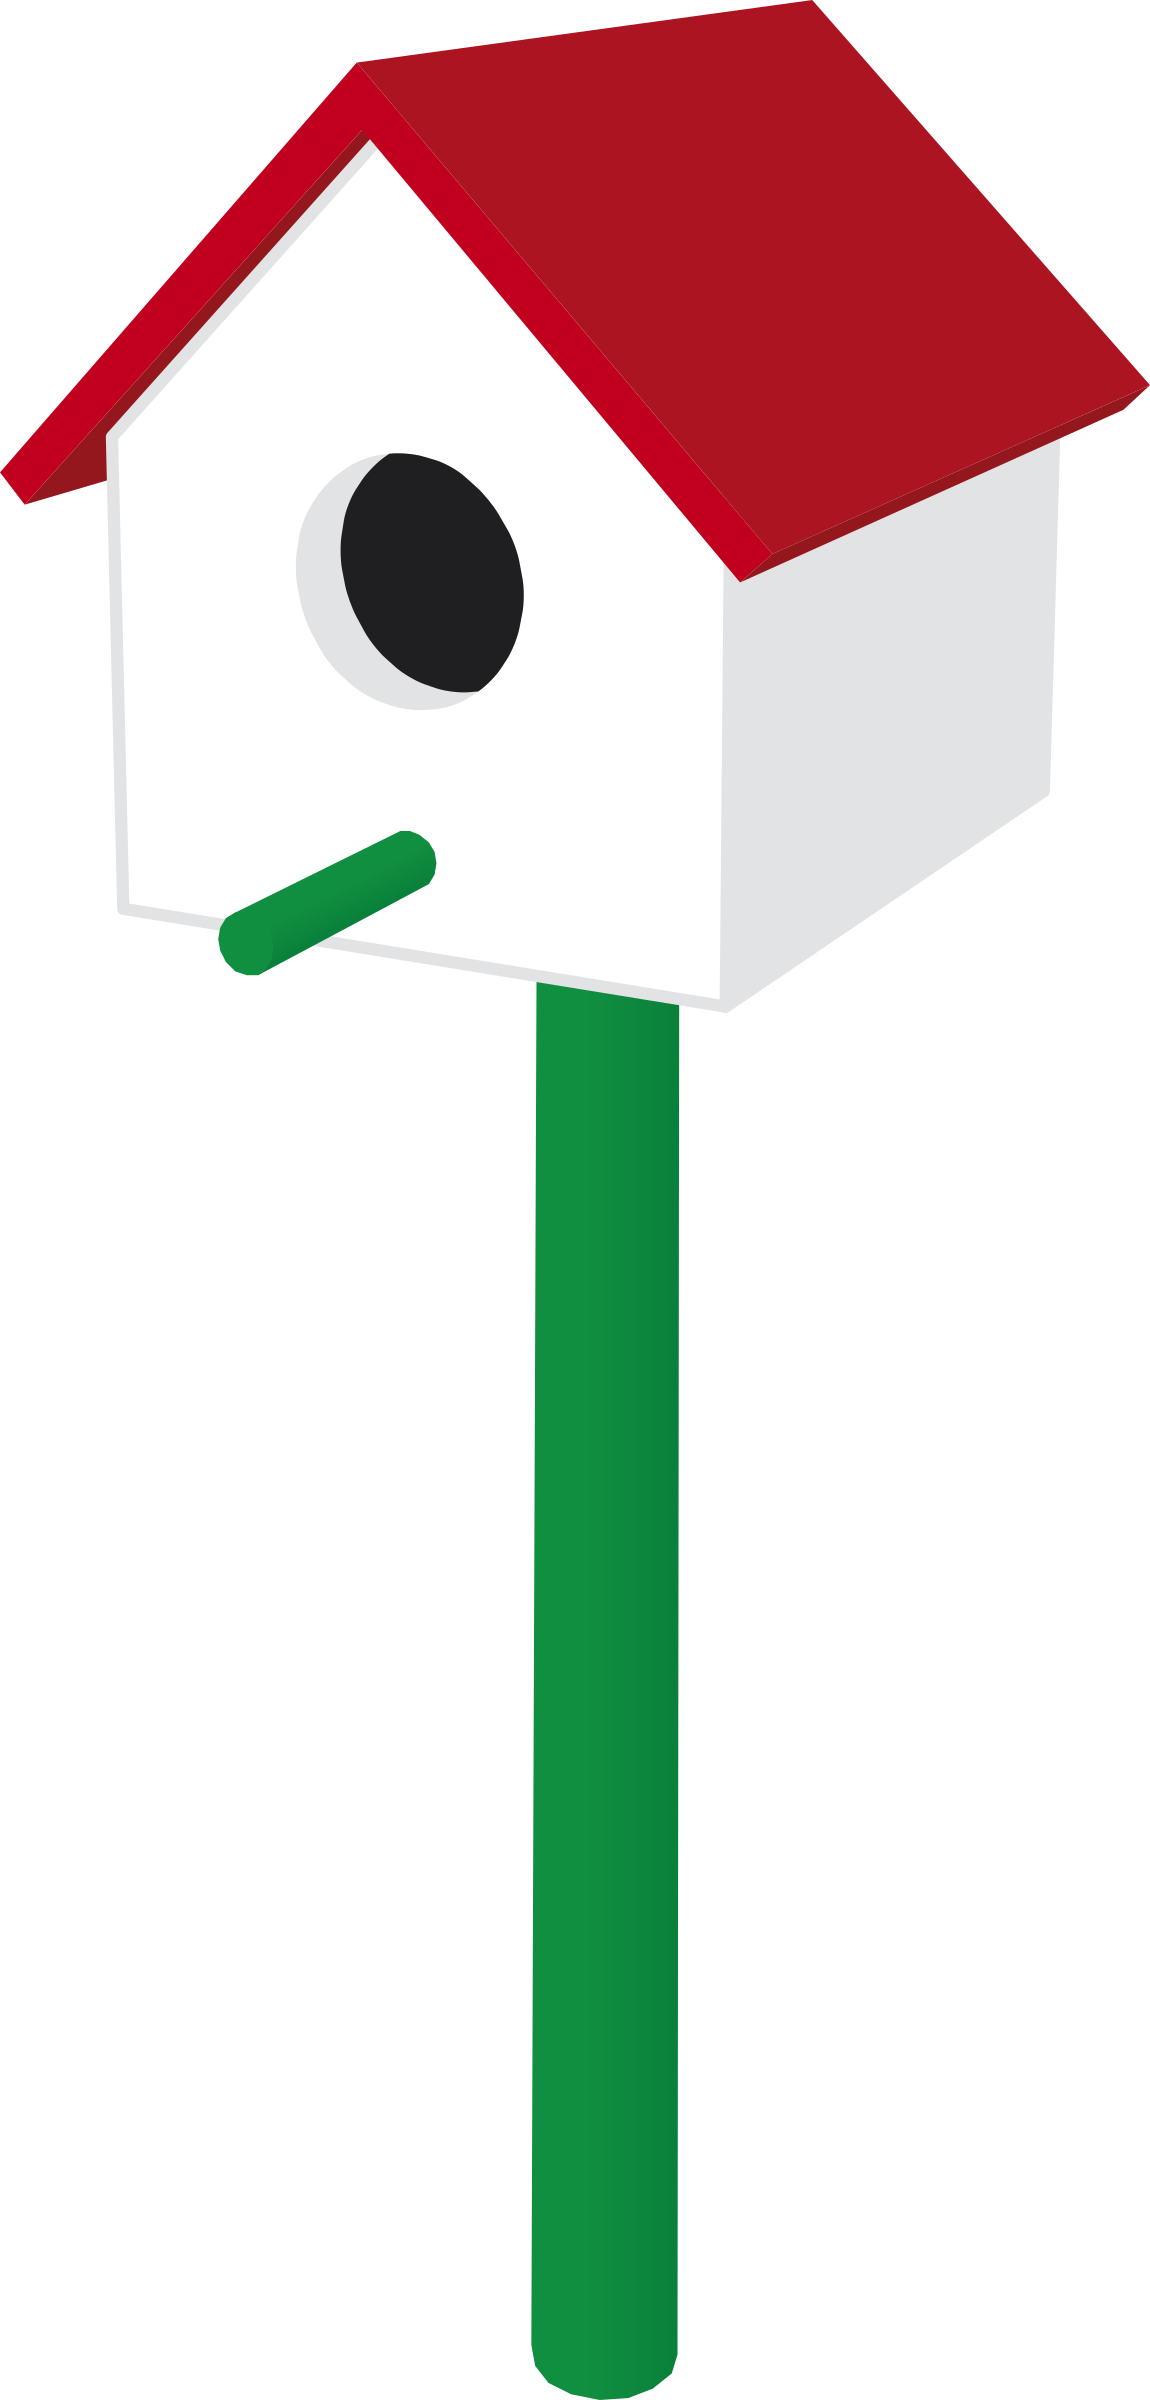 Birdhouse clipart hostted 2